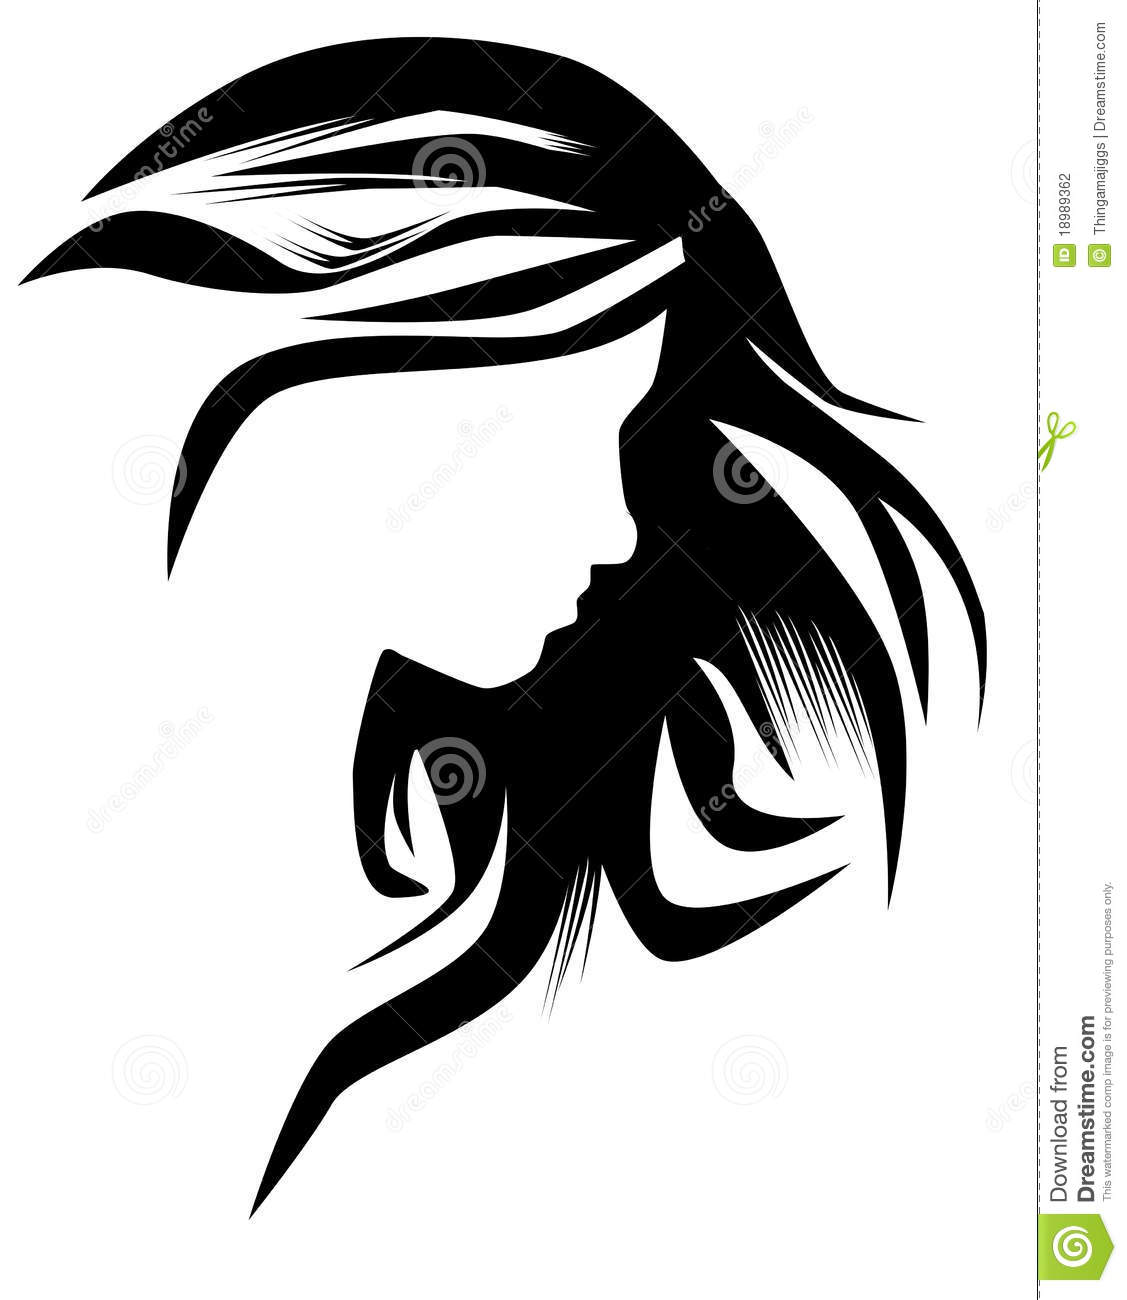 free clipart hairstyles - photo #41